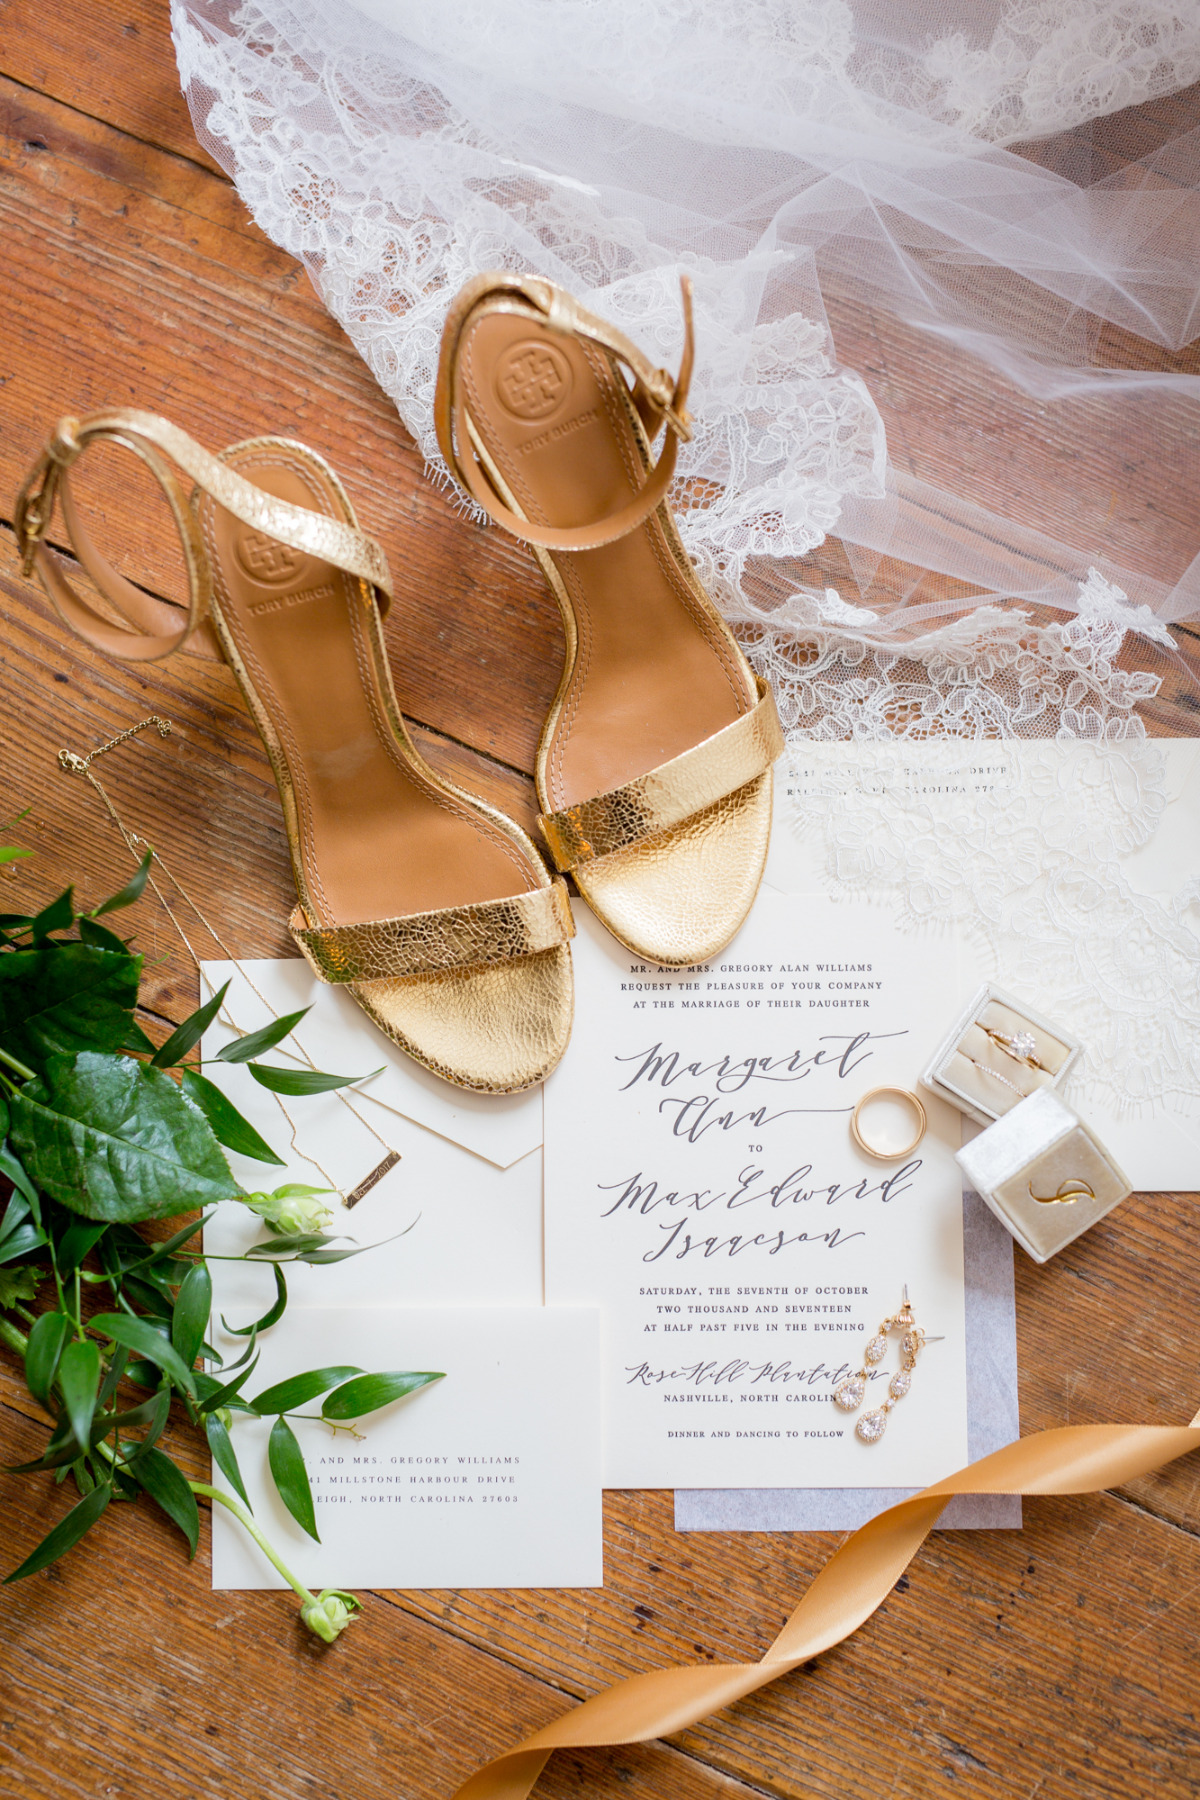 Gold wedding heels by Tory Burch